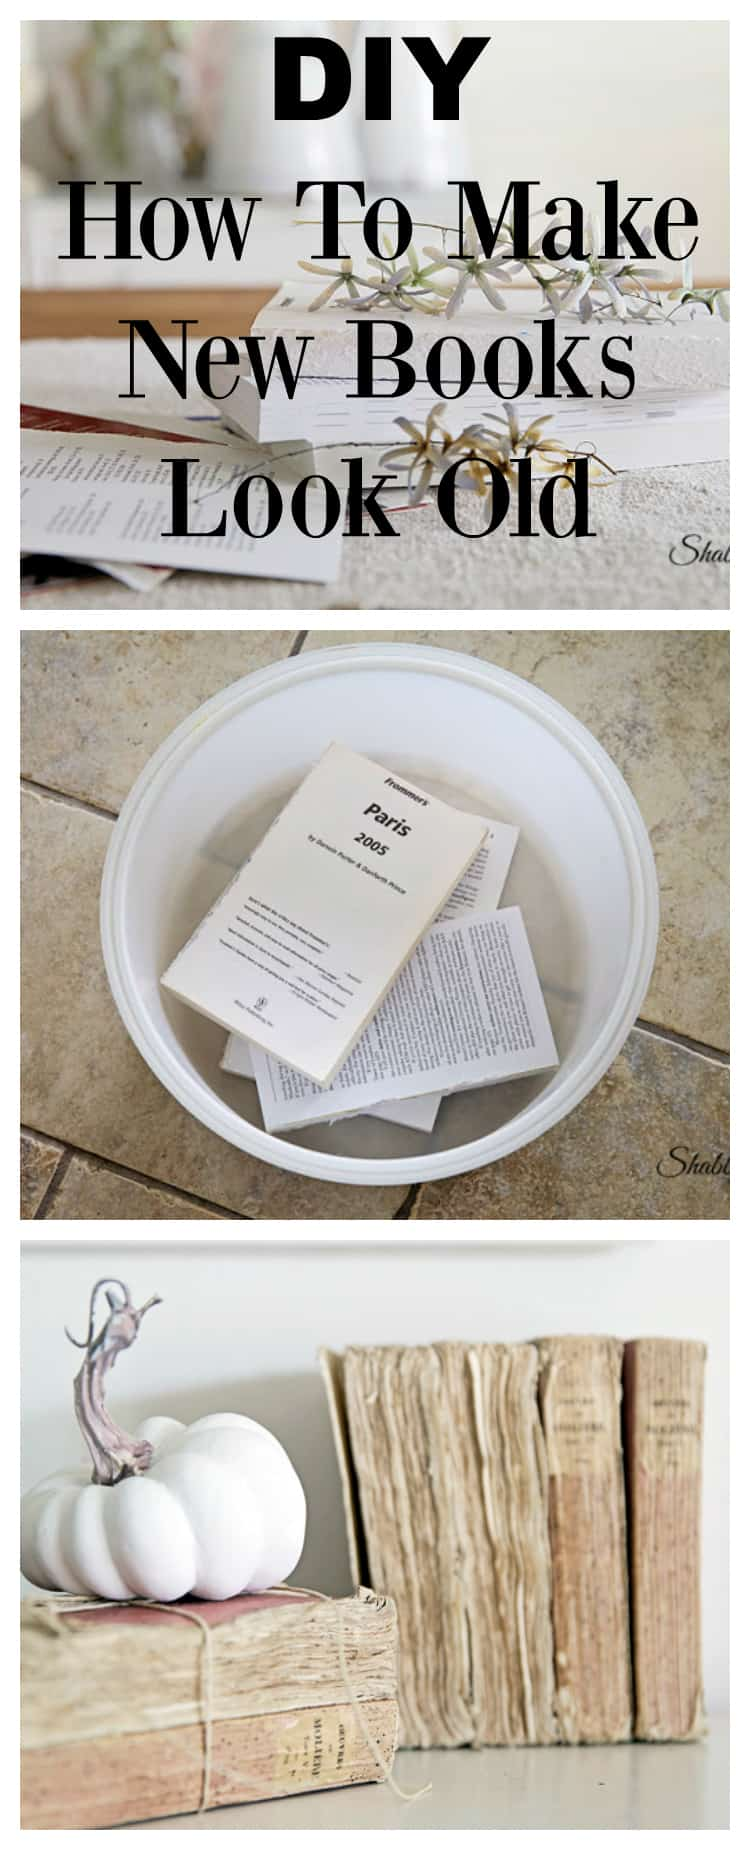 Diy how to make new books look old for How to make an old book